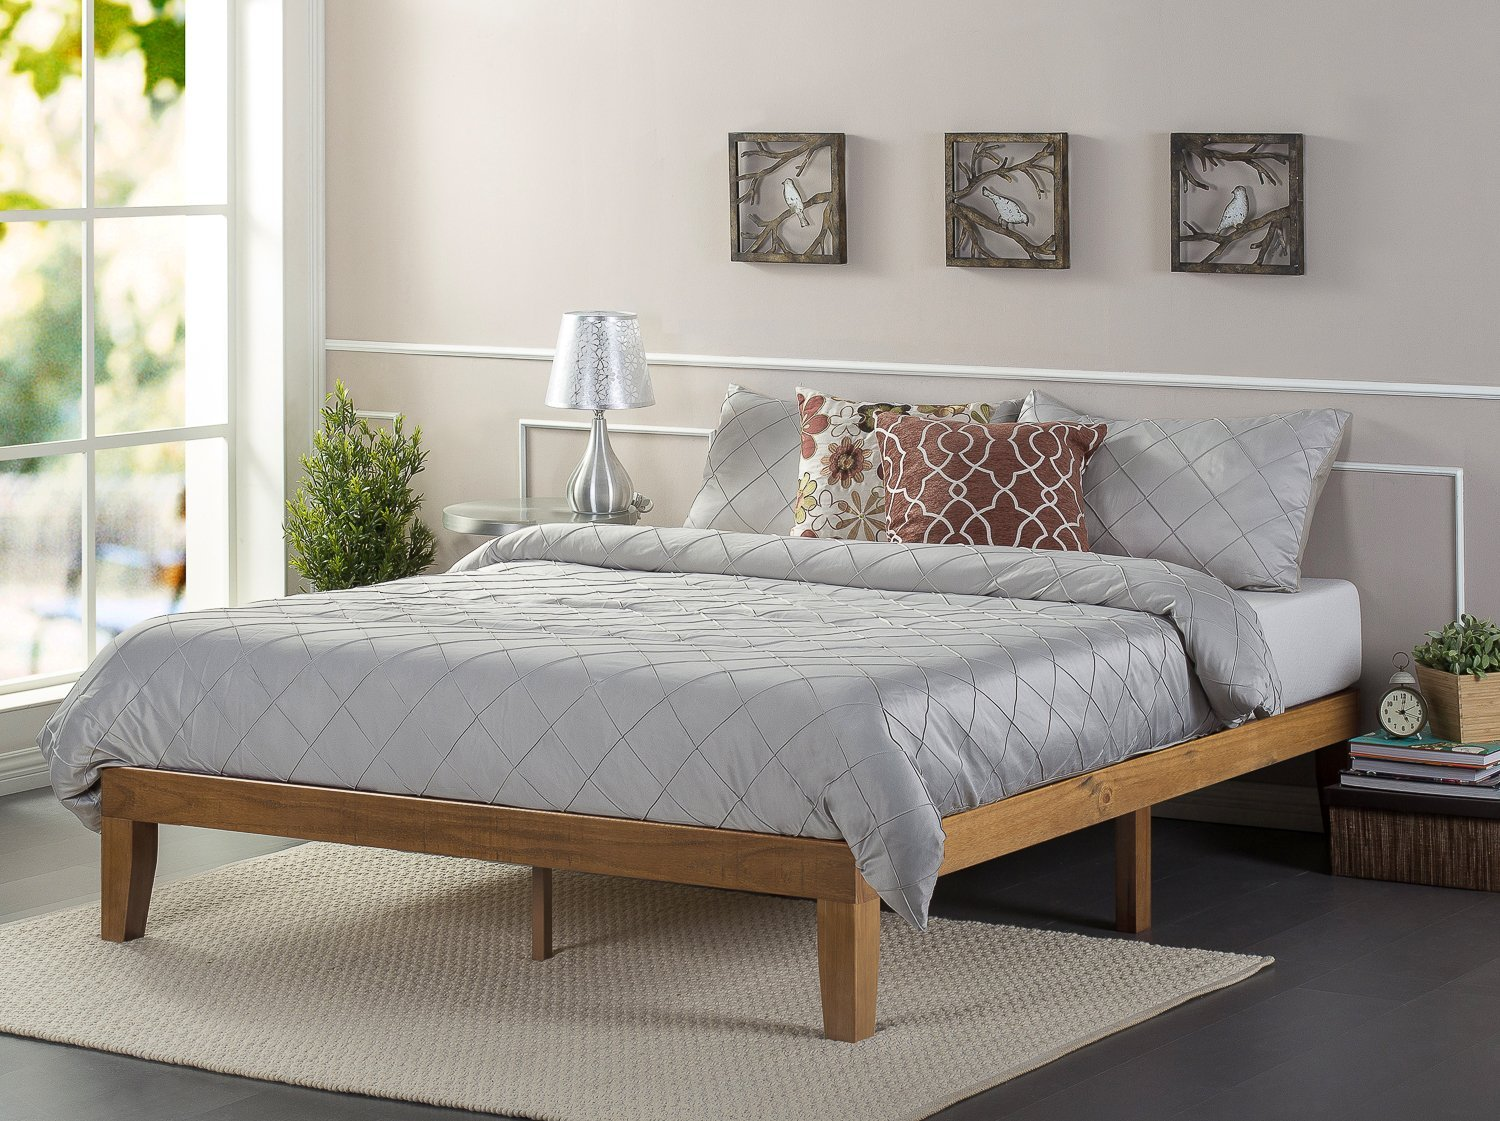 Review Zinus 12 Inch Wood Platform Bed Cozy Home 101